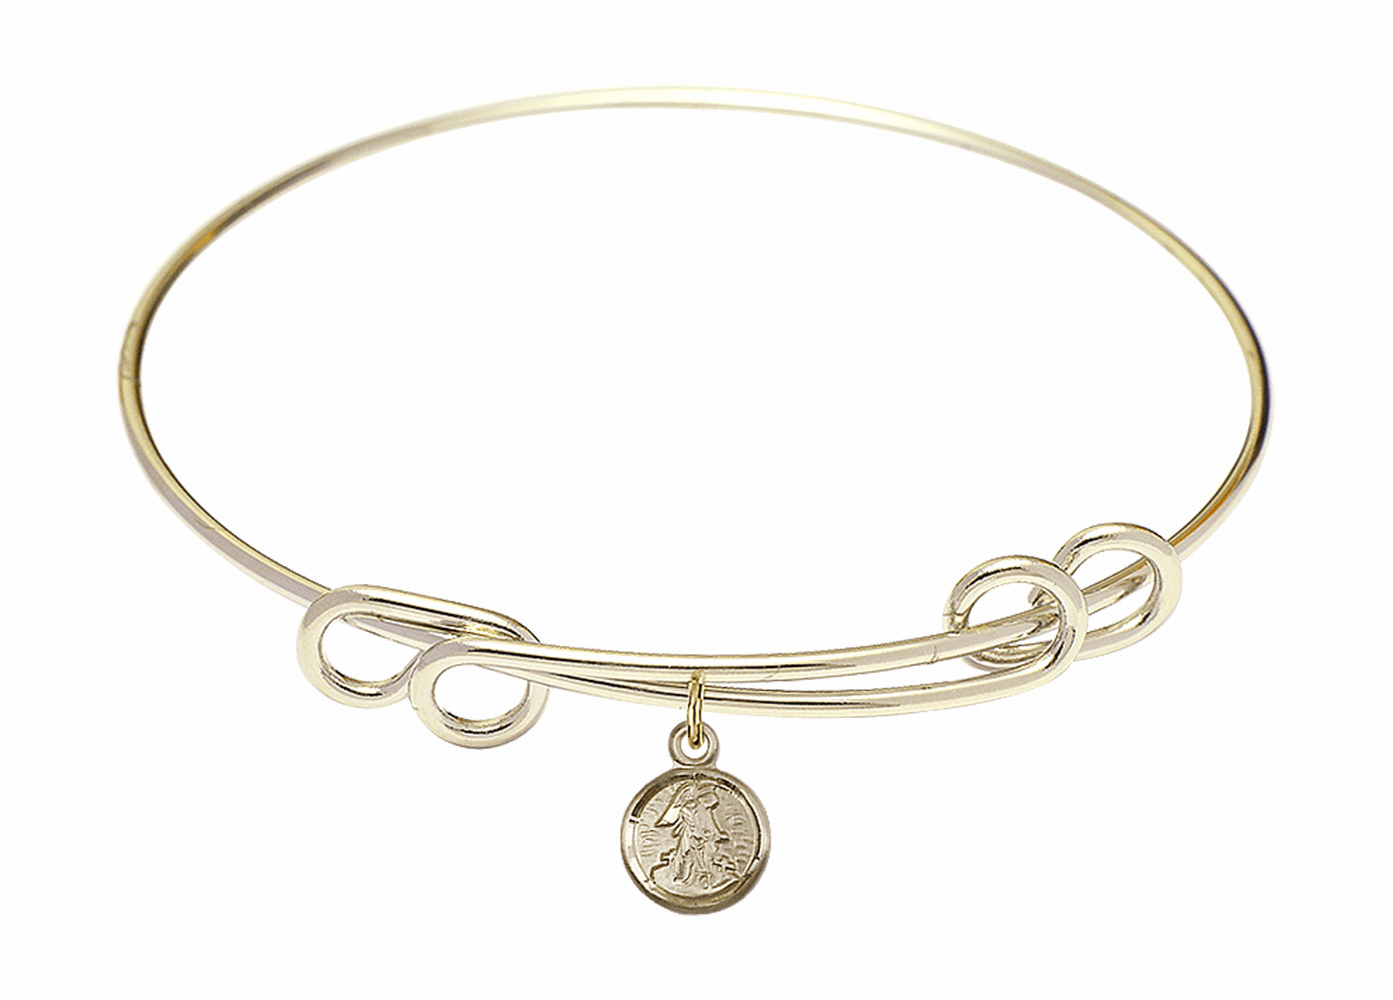 Round Double Loop Bangle Bracelet w/Small Guardian Angel Charm by Bliss Mfg